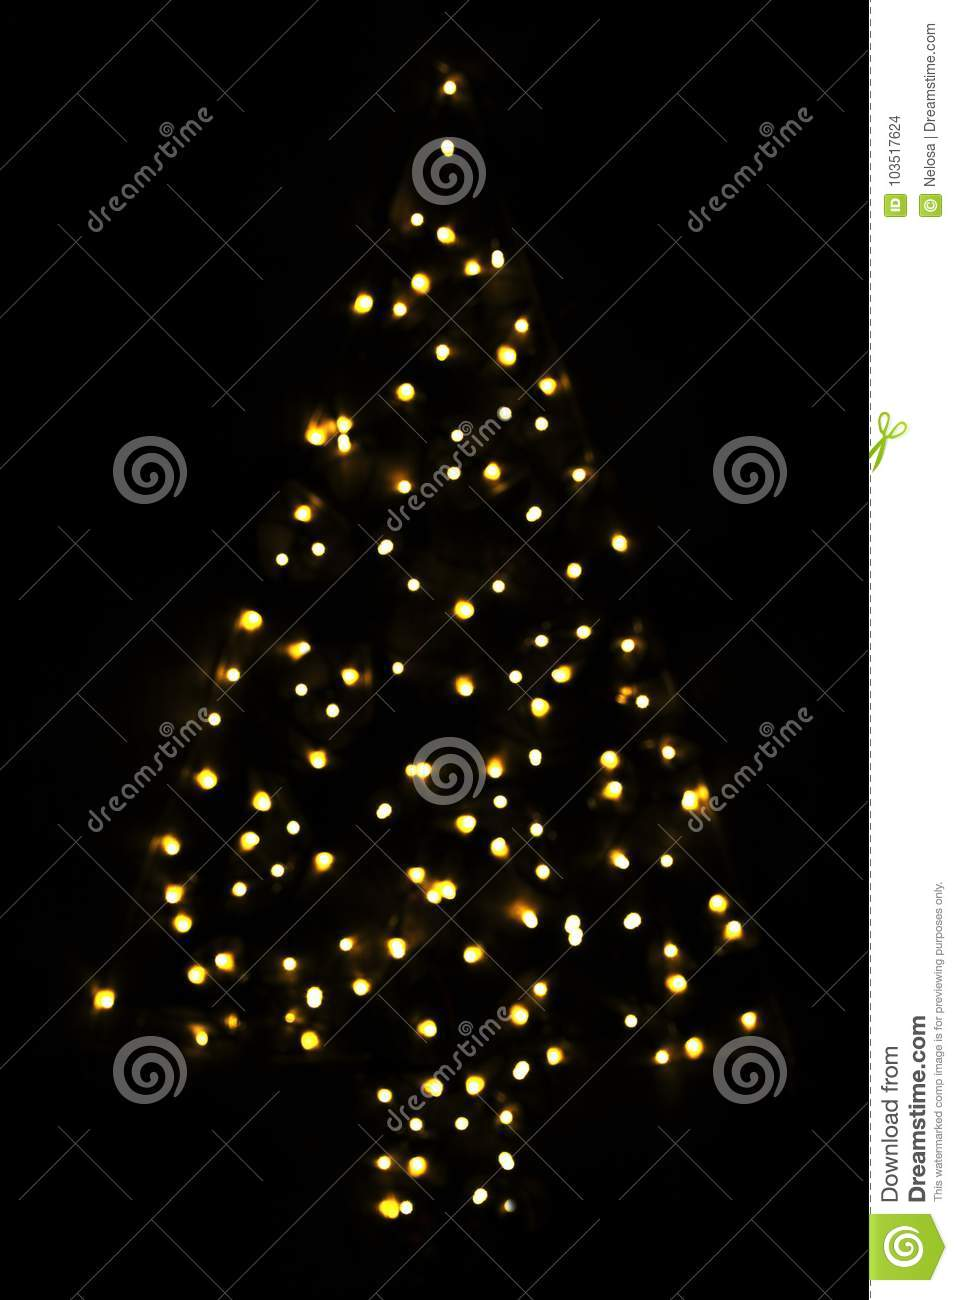 Golden Bright Glowing Magic Christmas Tree Stock Photo Image Of